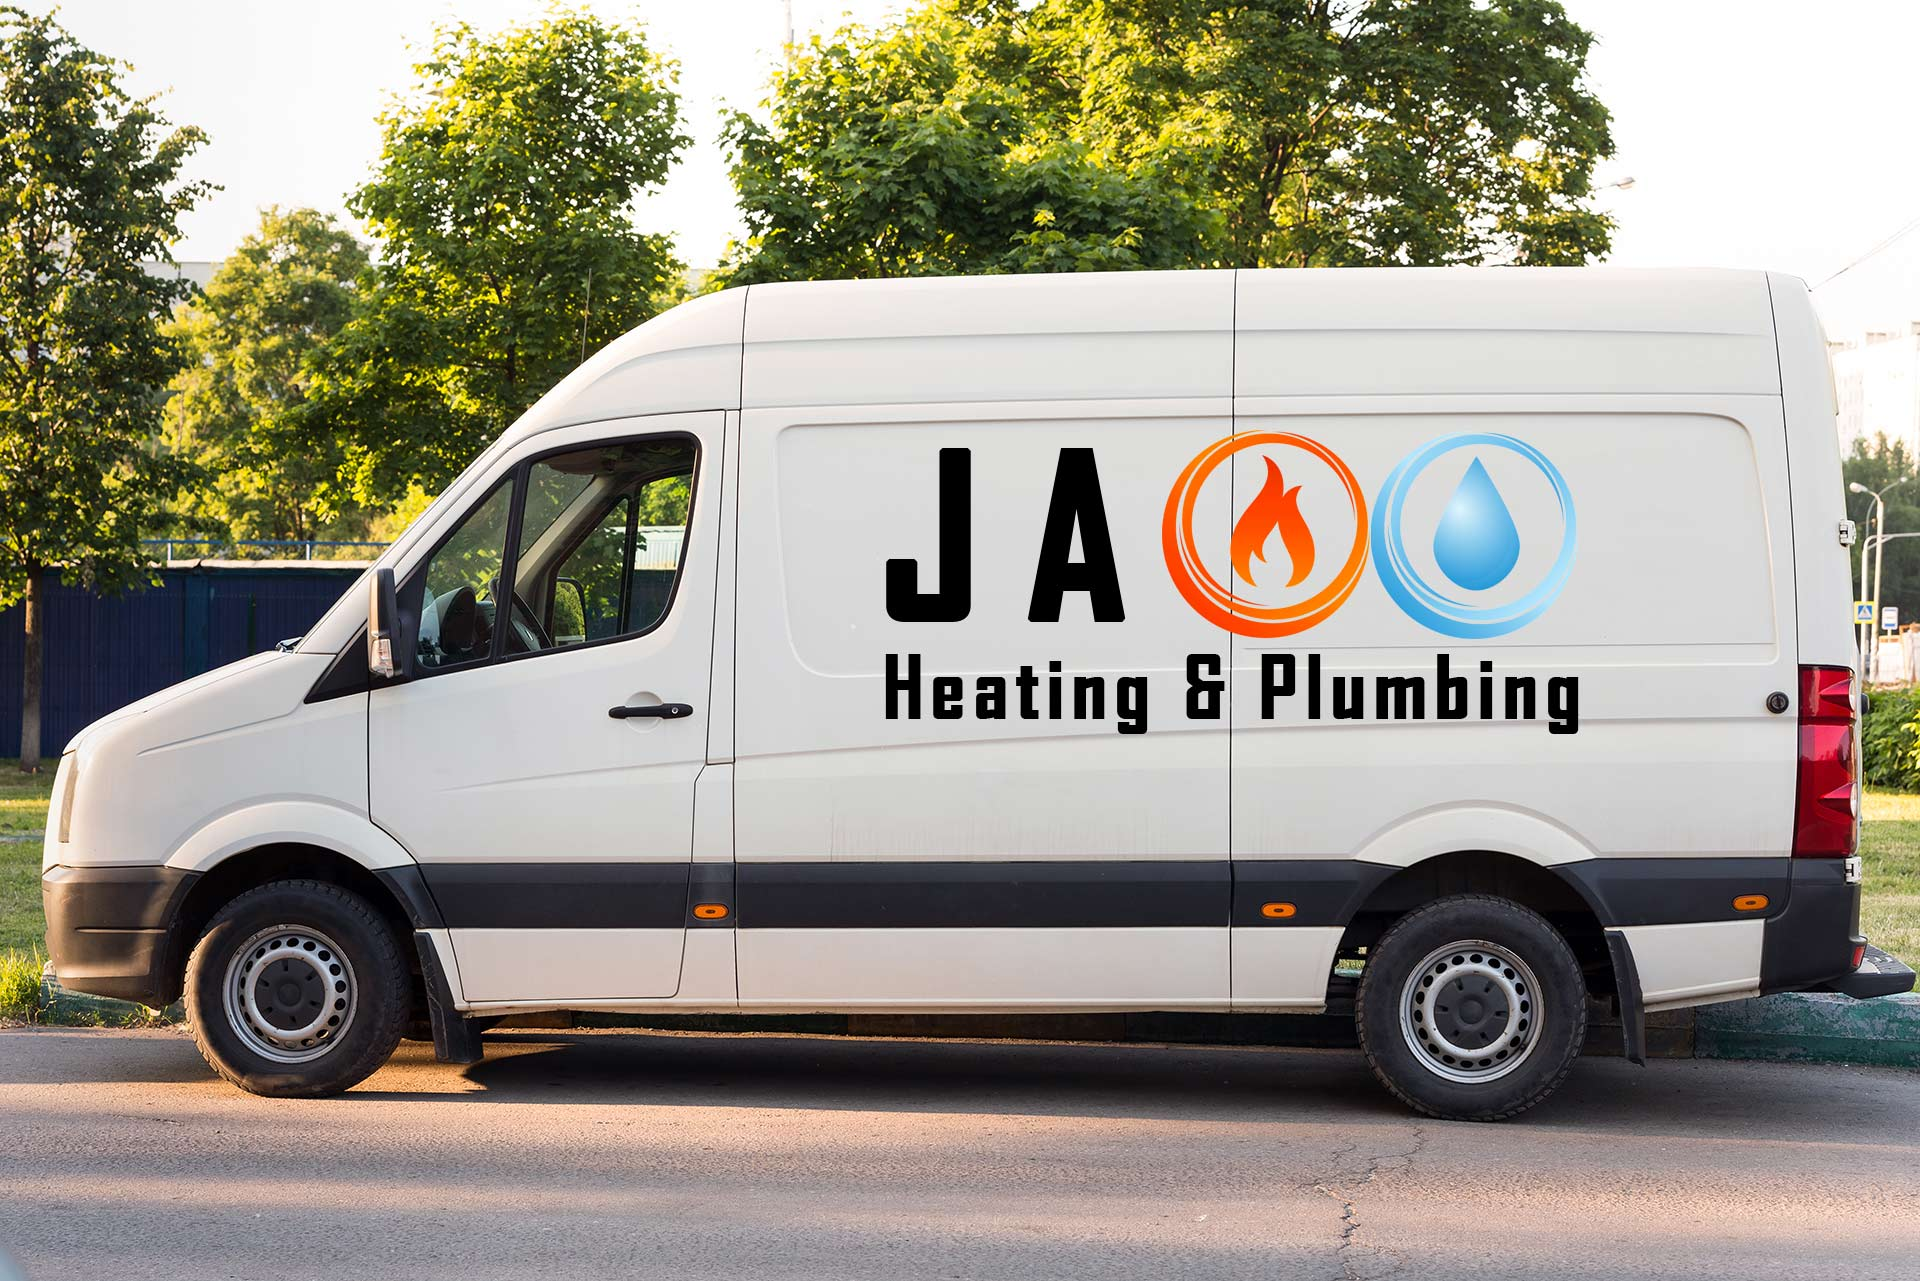 CENTRAL HEATING AND PLUMBING SERVICES IN HERTFORDSHIRE AND NORTH LONDON